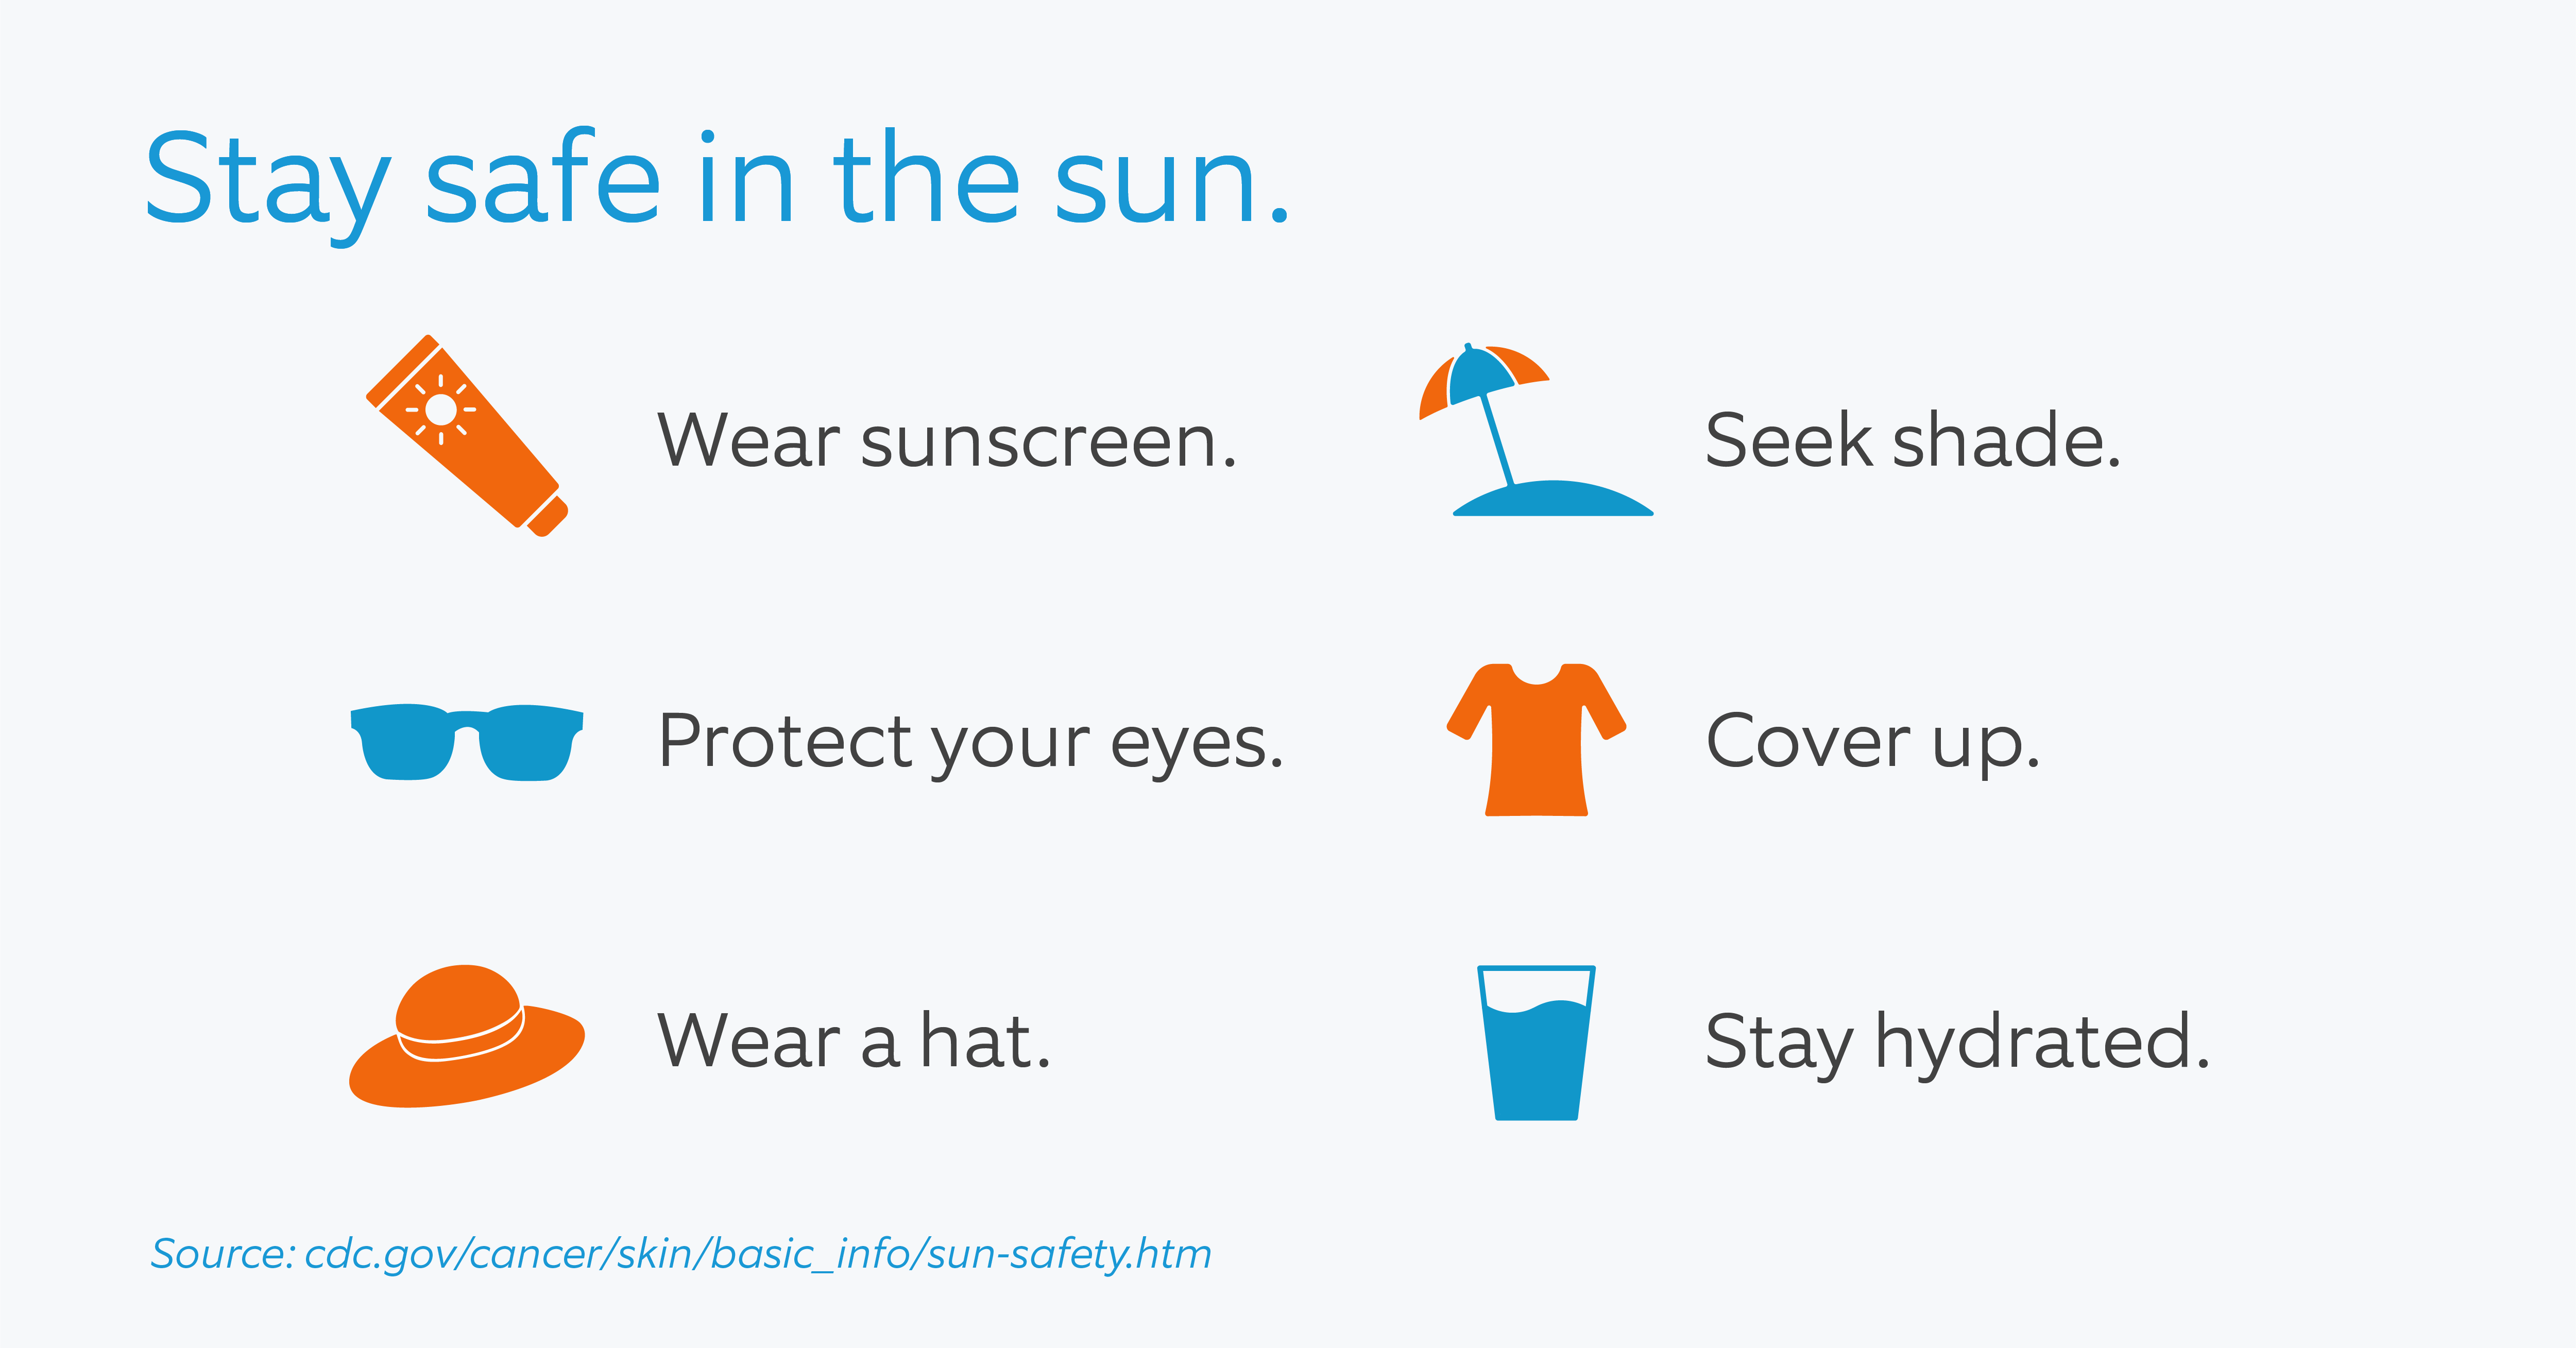 Stay_safe_in_the_sun.png